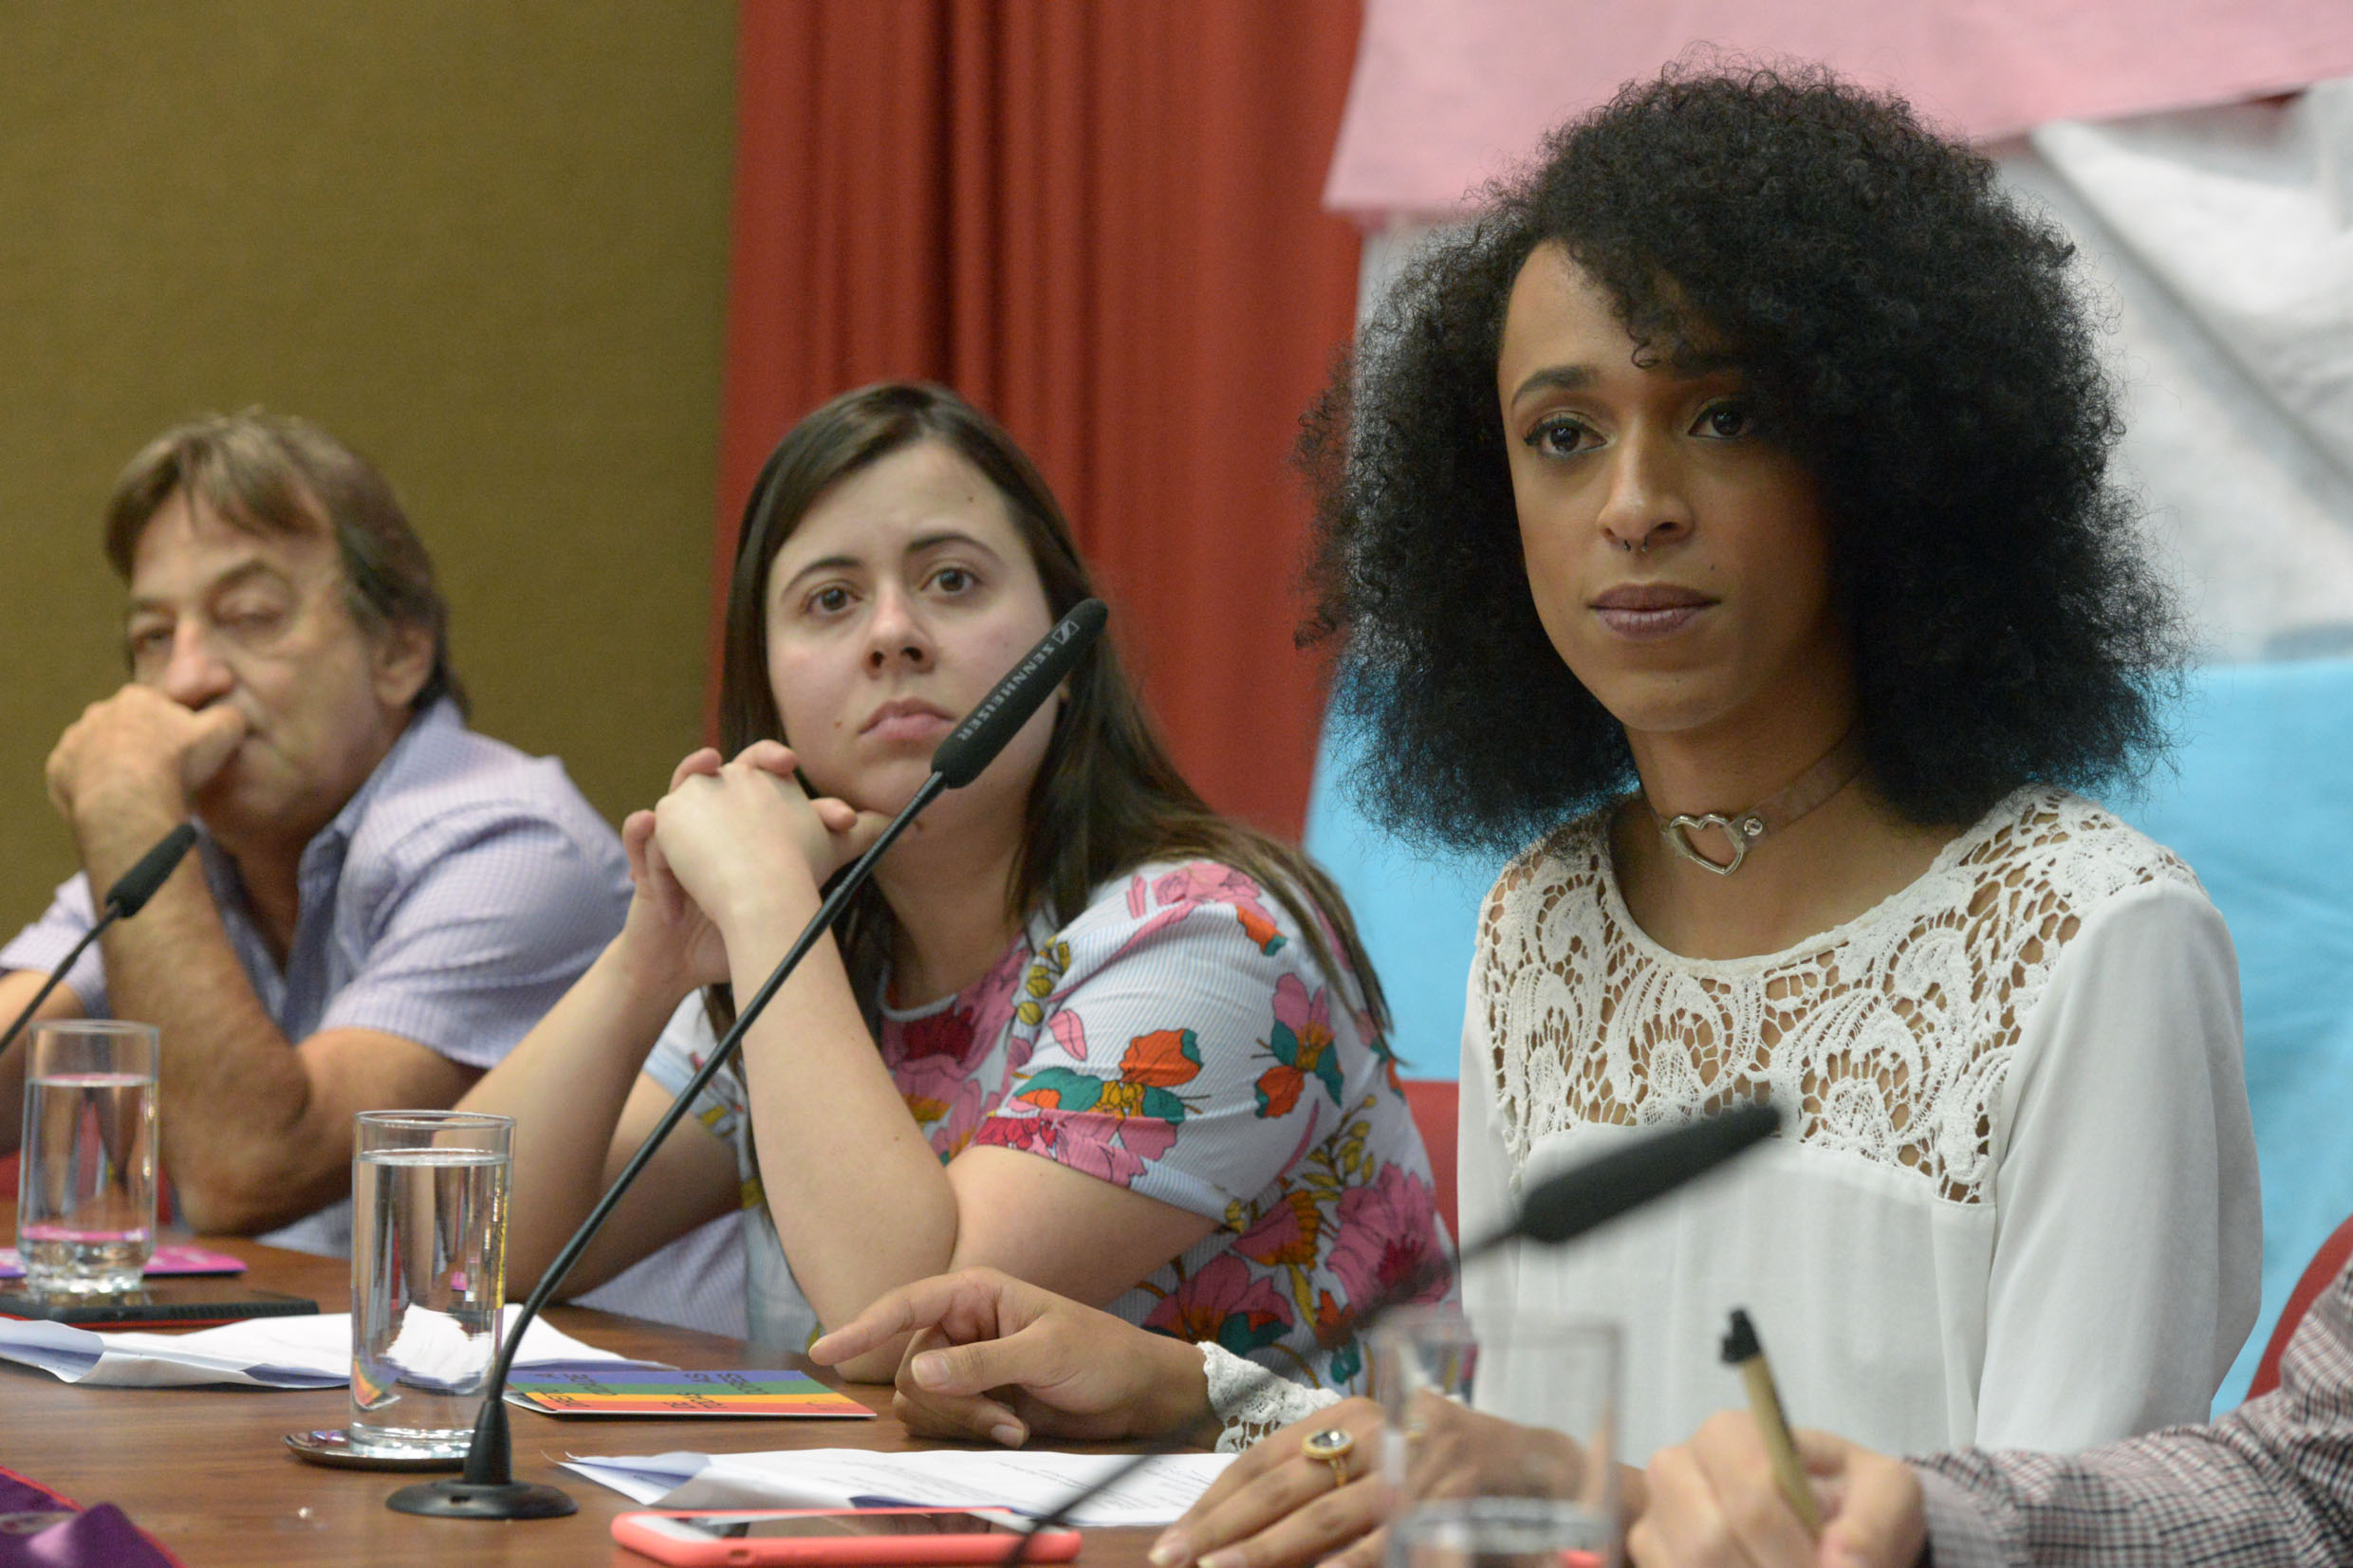 Mesa do evento<a style='float:right' href='https://www3.al.sp.gov.br/repositorio/noticia/N-06-2019/fg236631.jpg' target=_blank><img src='/_img/material-file-download-white.png' width='14px' alt='Clique para baixar a imagem'></a>